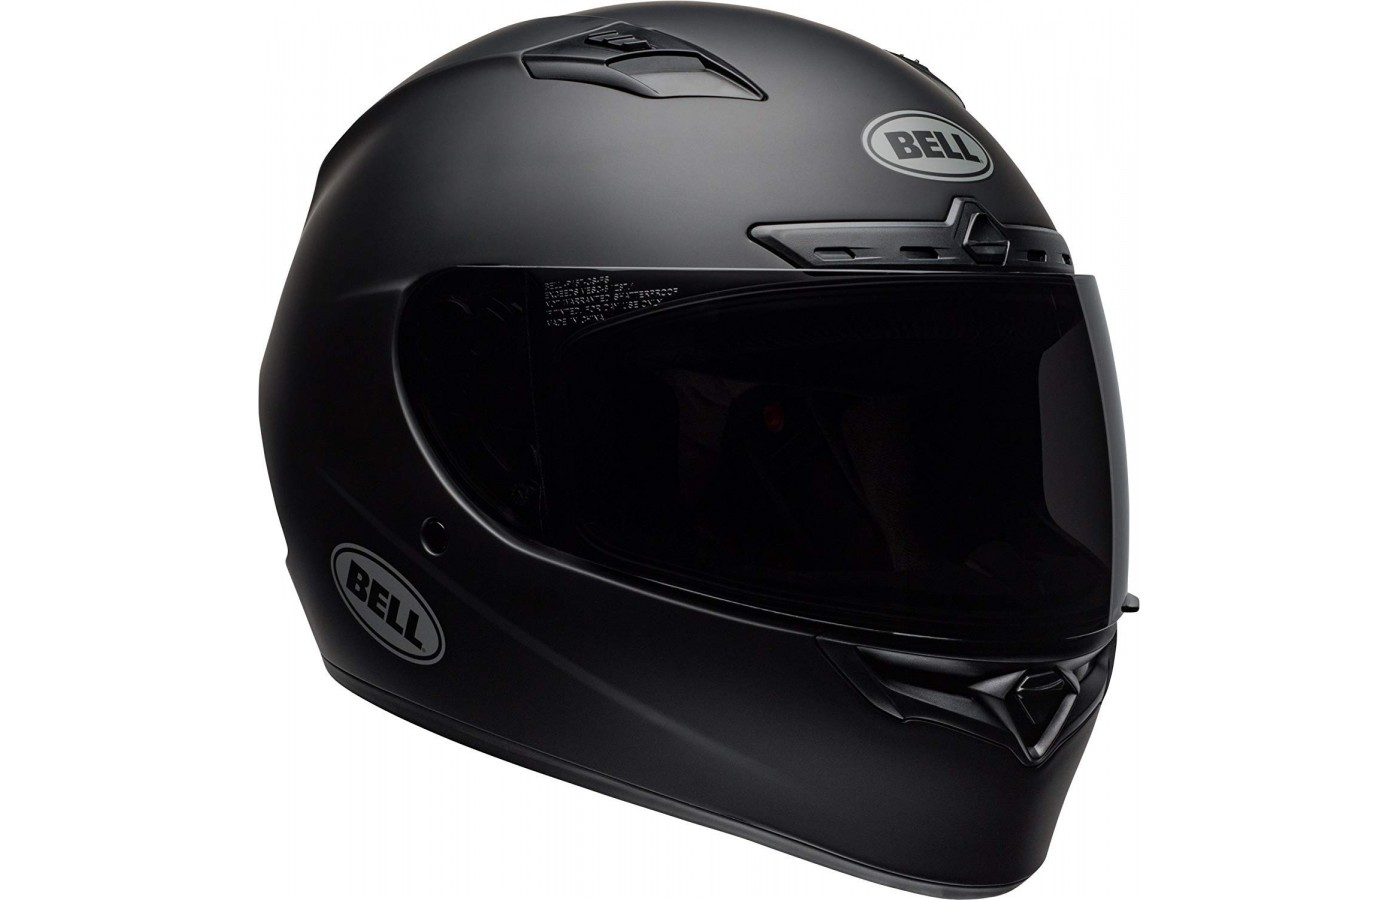 This helmet's main selling point was its face shield